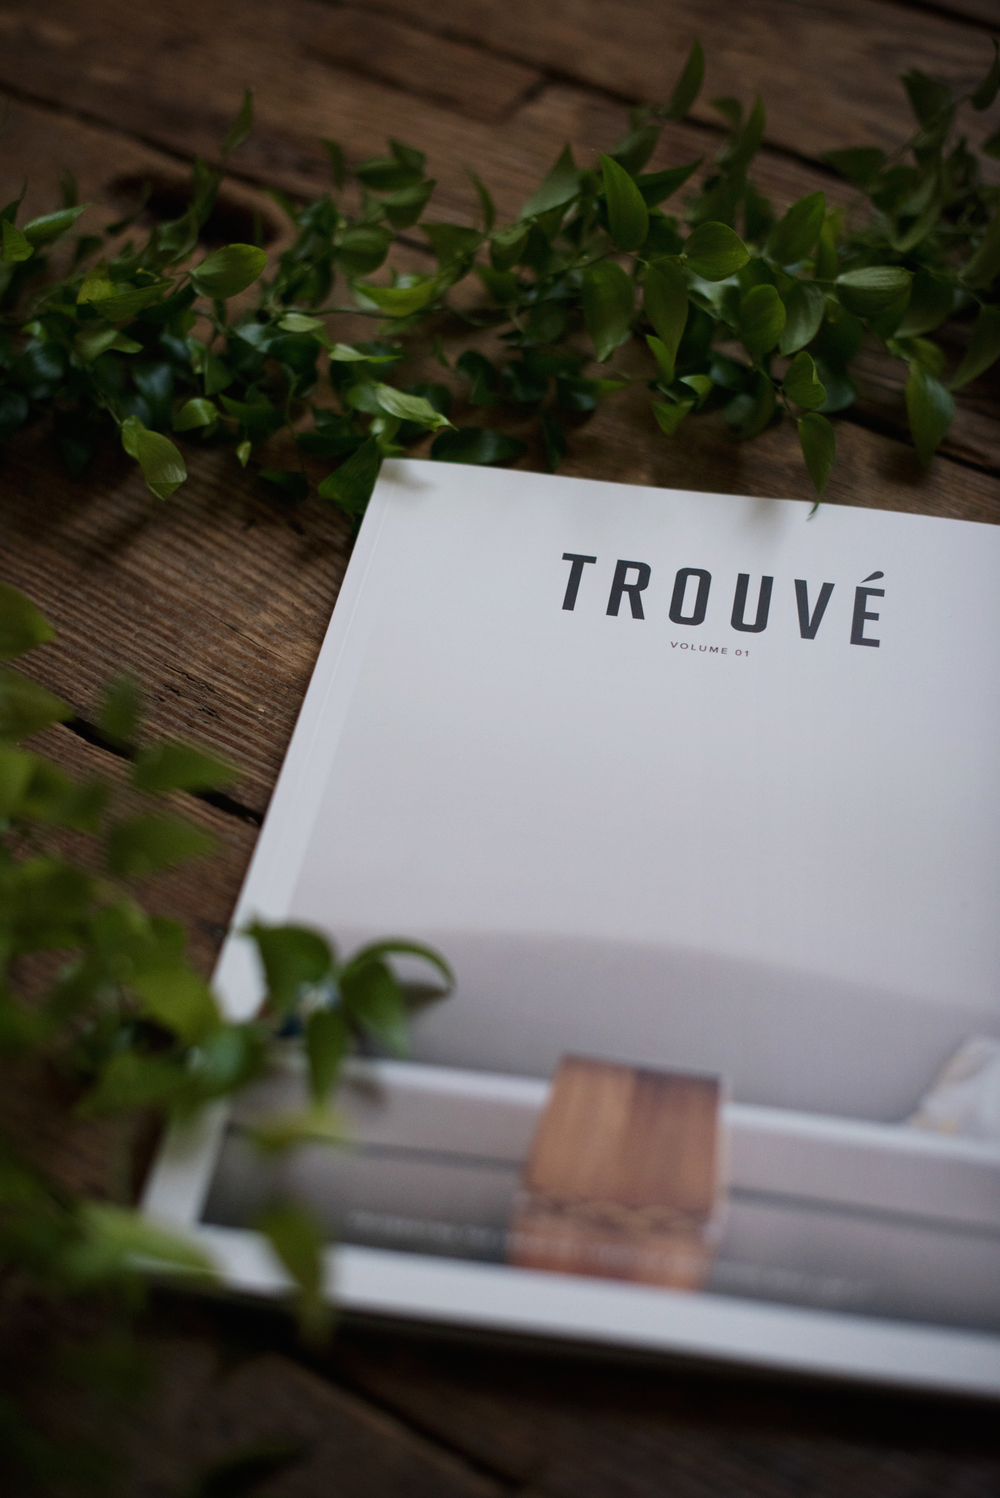 trouvé+magazine+sponsors+thrive+photographers+workshop+DC